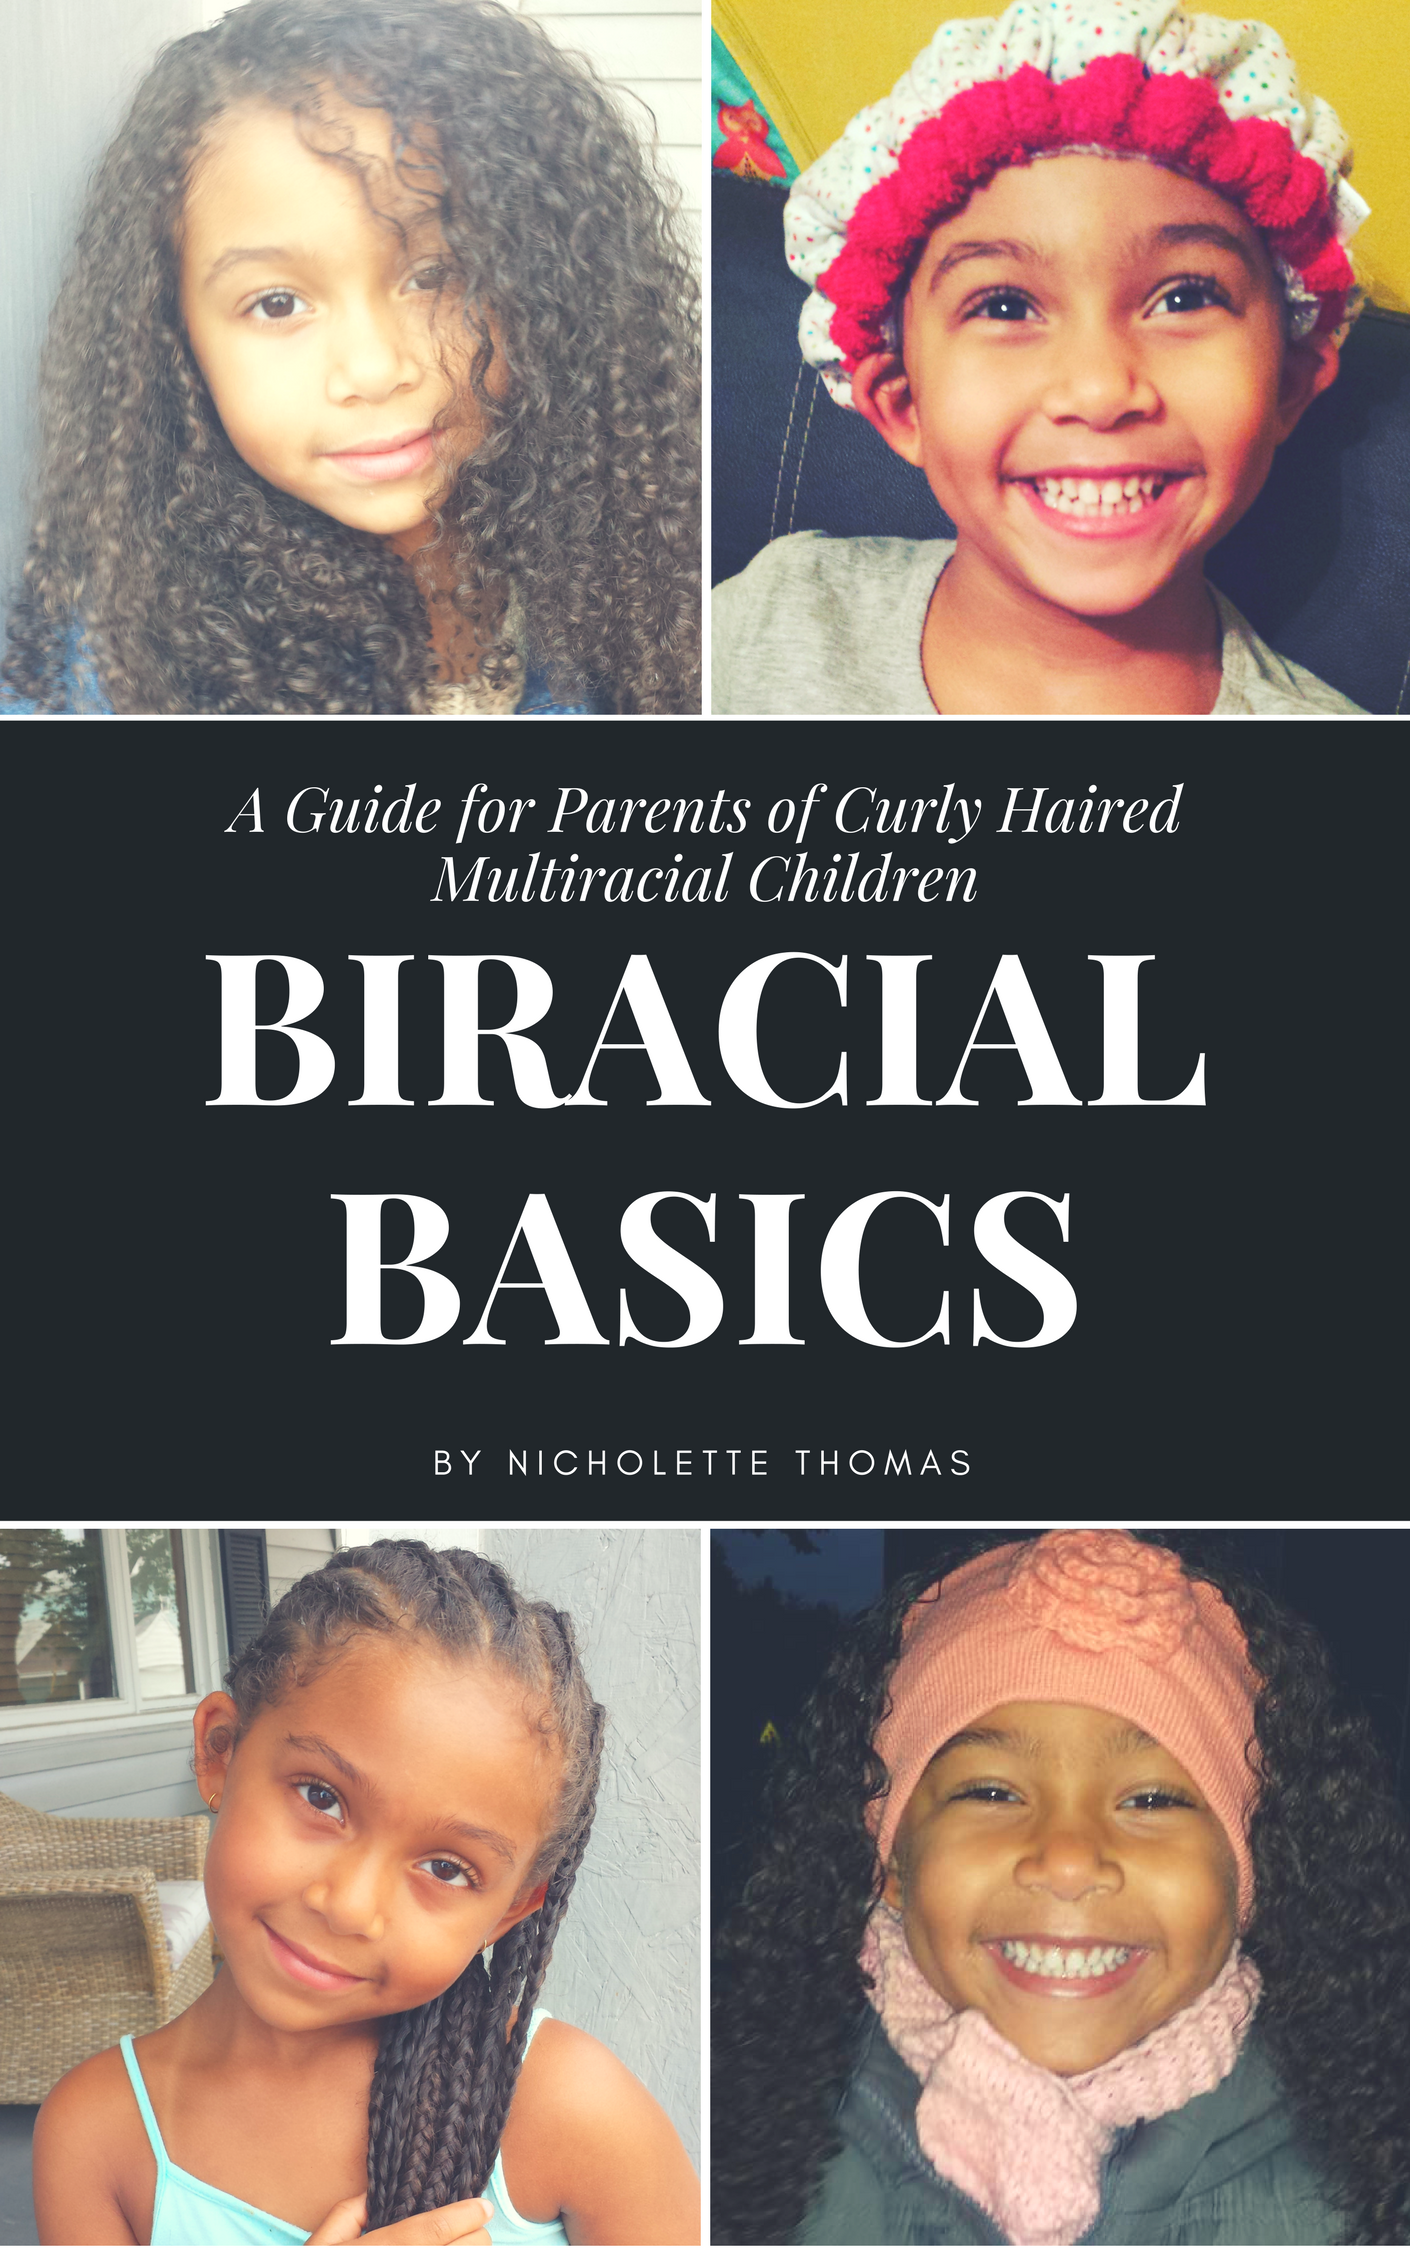 Biracial Basics - A Guide for Parents of Curly Haired Multiracial Children - by Nicholette Thomas _Cover